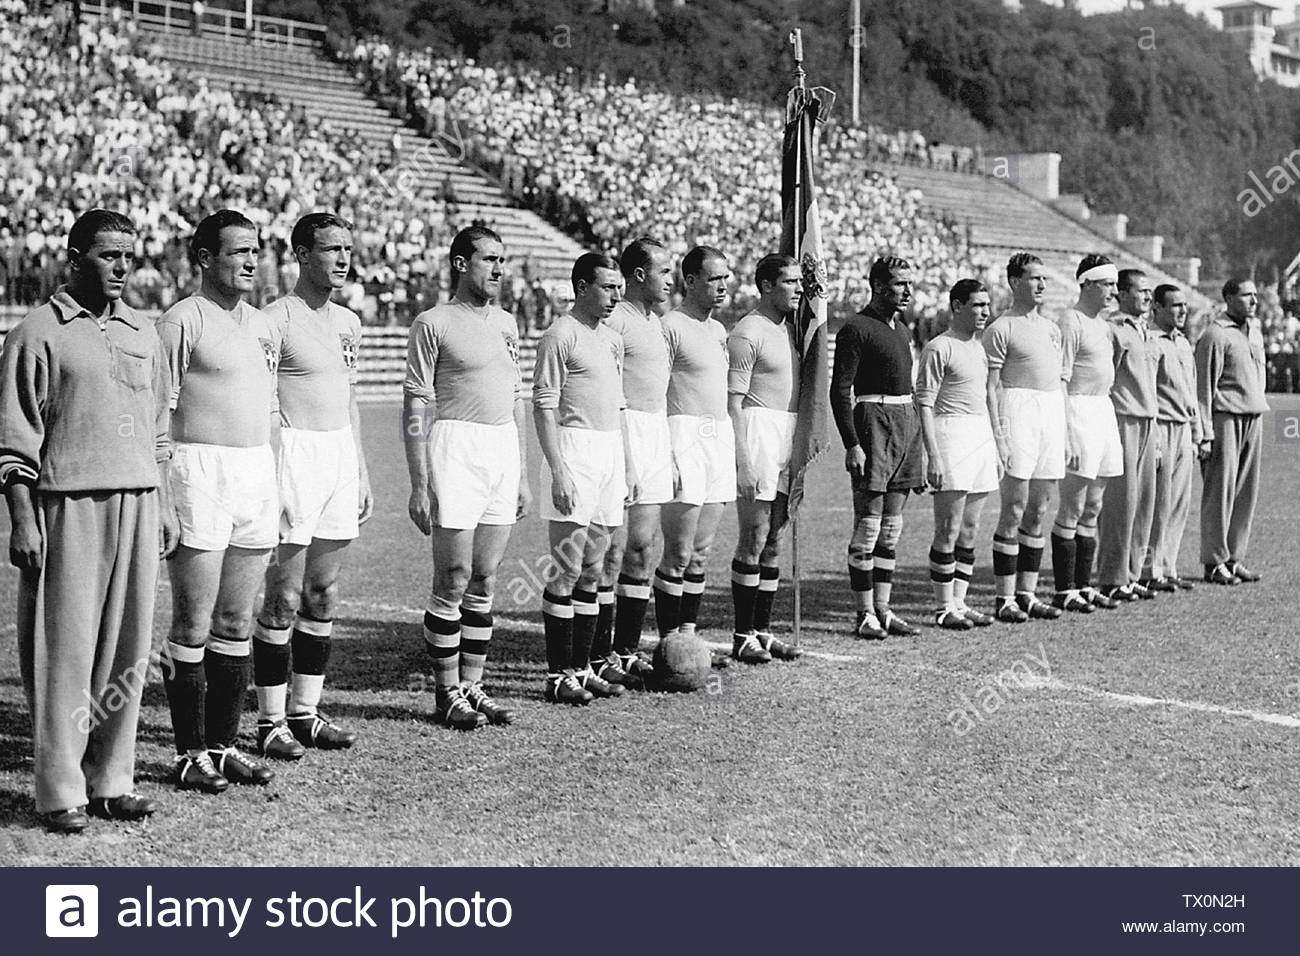 'Italian national soccer team players pose for a group picture, 10 June 1934 in Rome, before their World Cup final against Czechoslovakia. Italy won the title beating Czechoslovakia 2-1 in extra time. (From 2nd L : Luis Monti, Eraldo Monzeglio, Angelo Schiavio, Raimundo Orsi, Giovanni Ferrari, Enrique Guaita, Giuseppe Meazza - with flag -, Giampiero Combi, Attilio Ferraris IV, Luigi Allemandi, Luigi Bertolini); 10 June 1934, 17:14; Gazzetta dello Sport; STAFF/AFP/Getty Images; ' - Stock Image